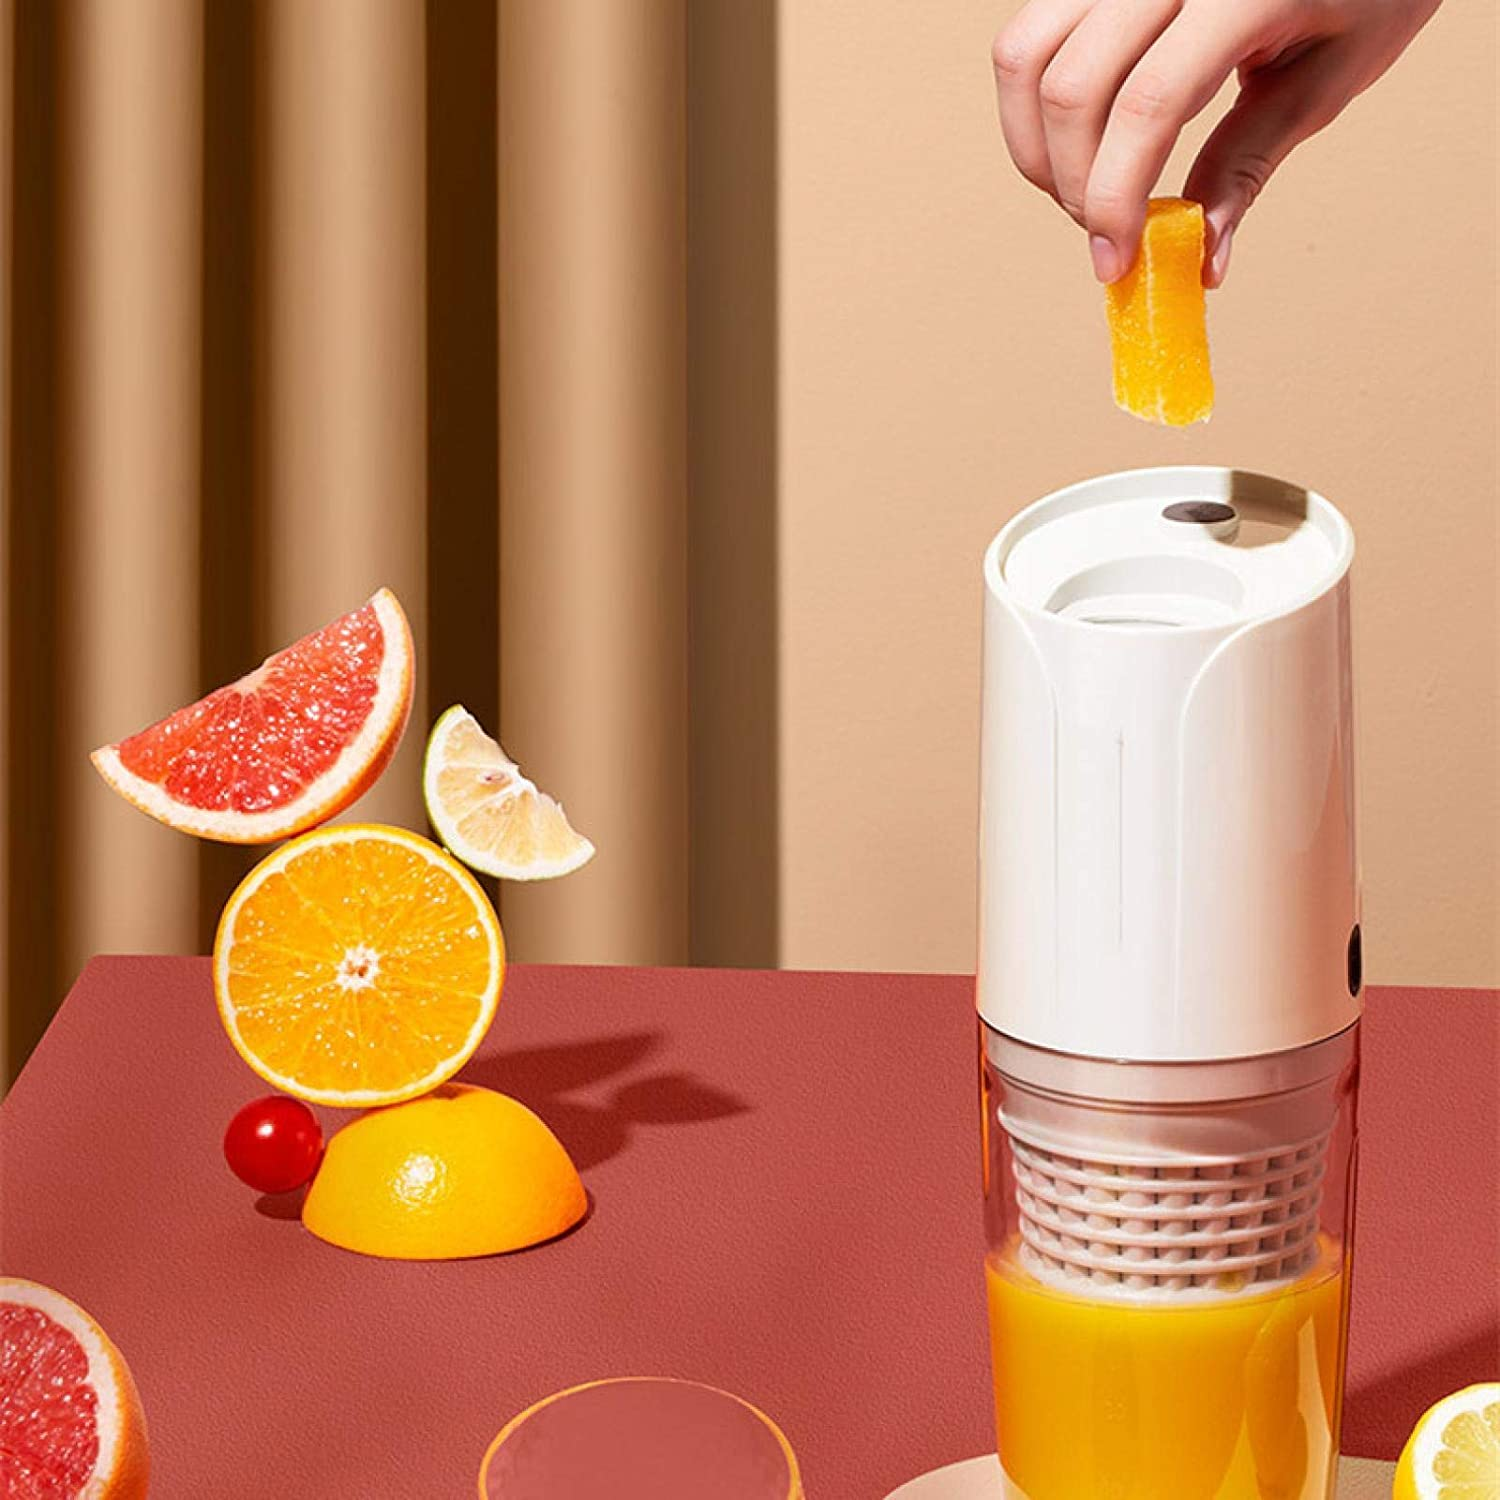 WMJ USB oplaadbare juicer, mini draagbare juicer cup, thuis fruit juicer, outdoor leisure sport juicer cup, juicer rood Rood